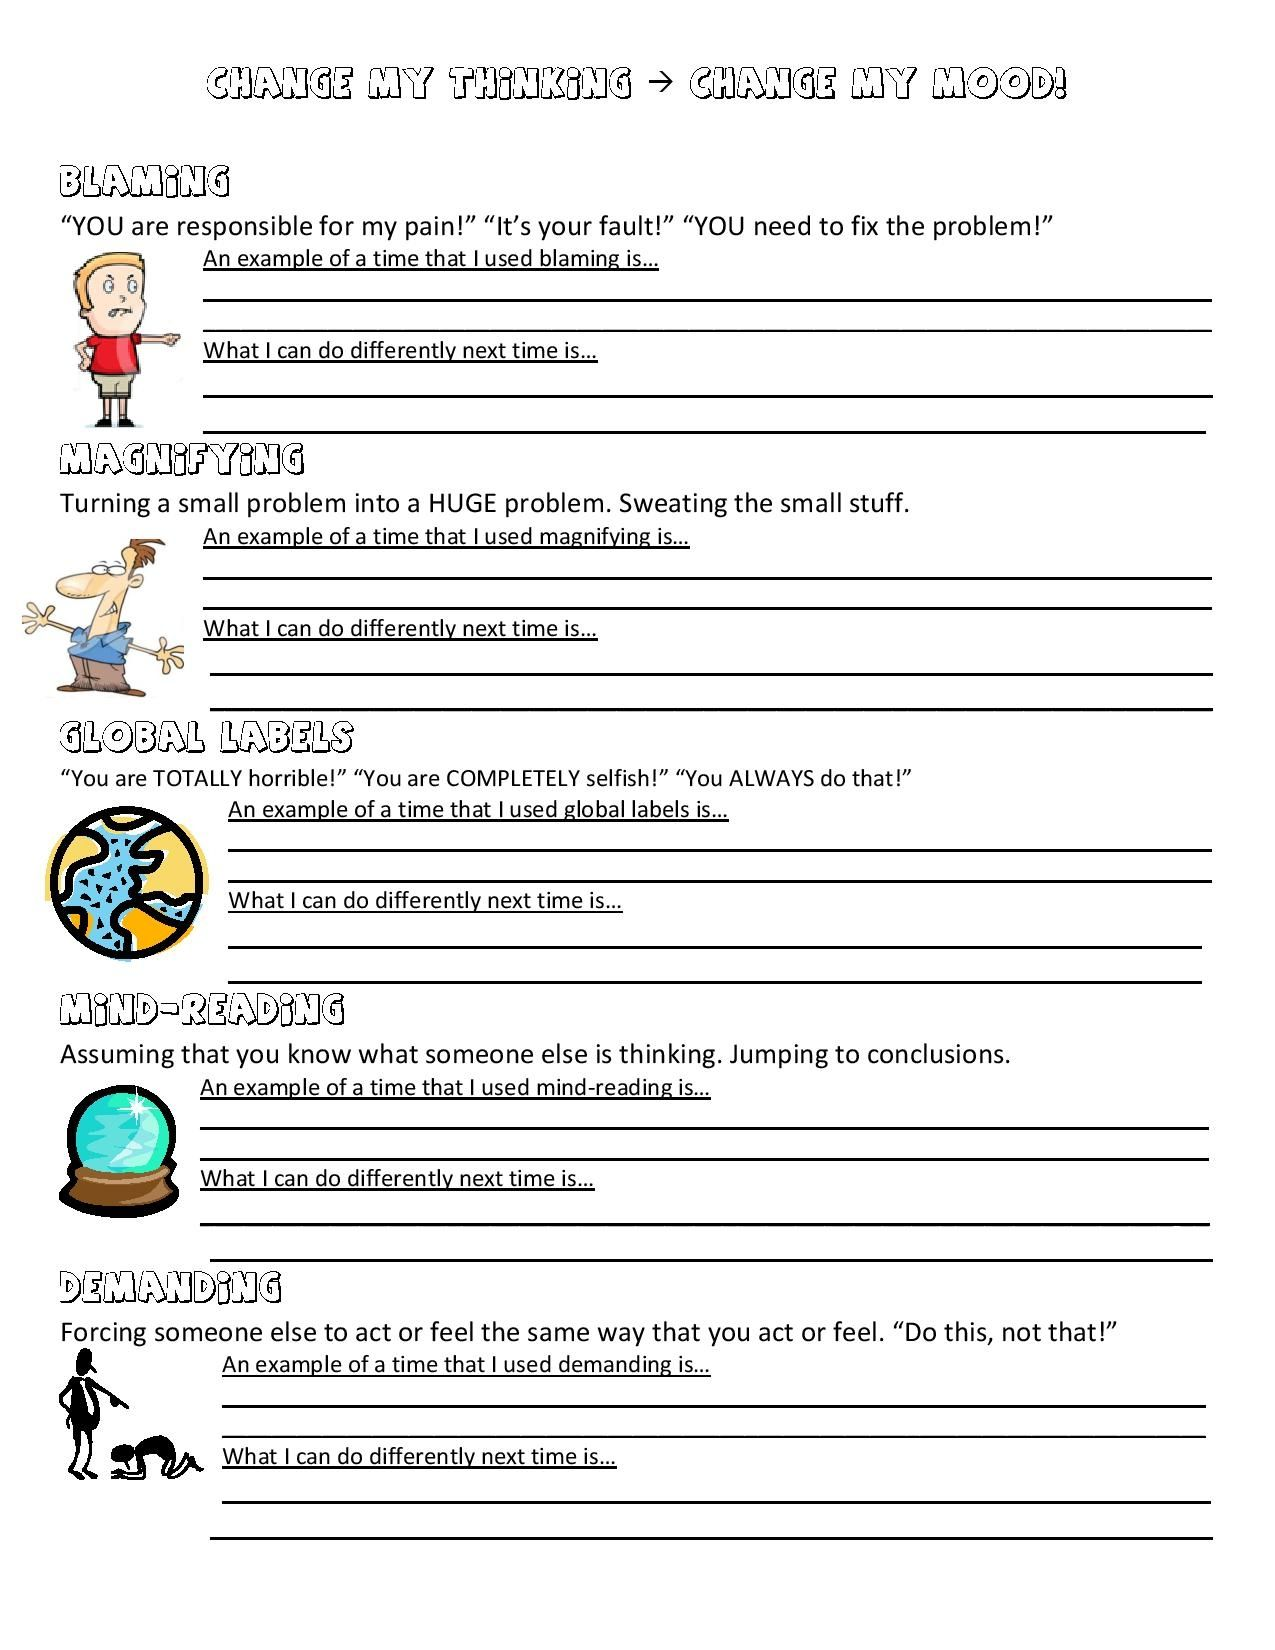 Printables Anger Management Worksheets Pdf 1000 images about anger management on pinterest anxiety activities and for kids